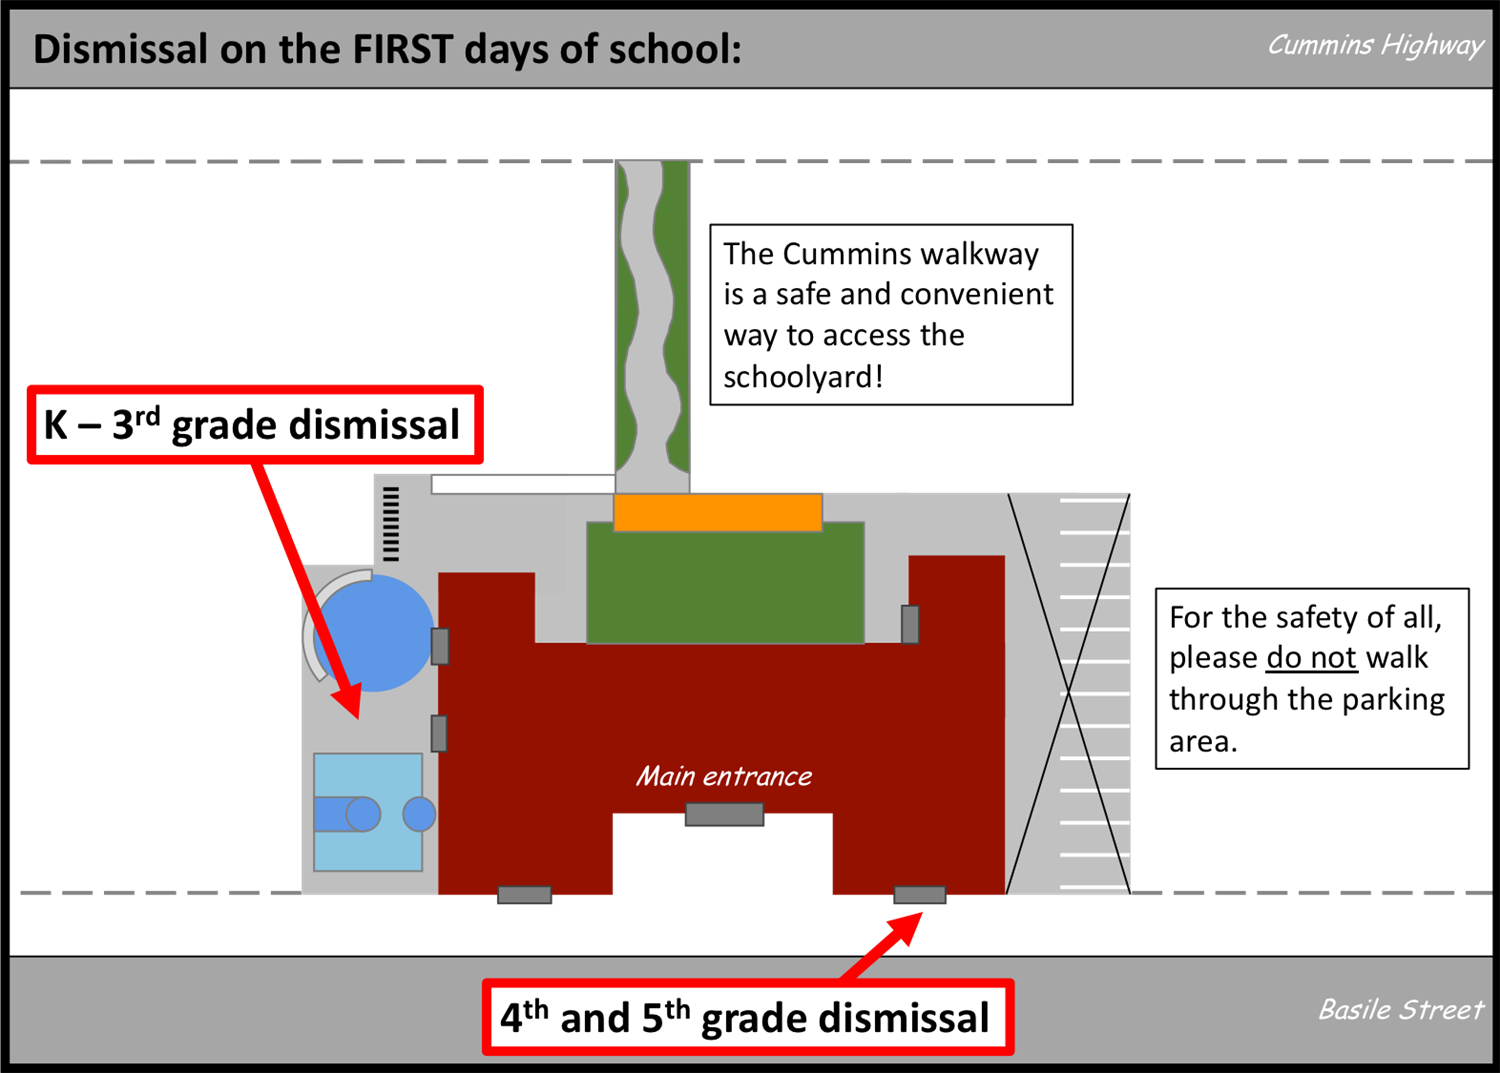 diagram of dismissal procedures for the first days of school